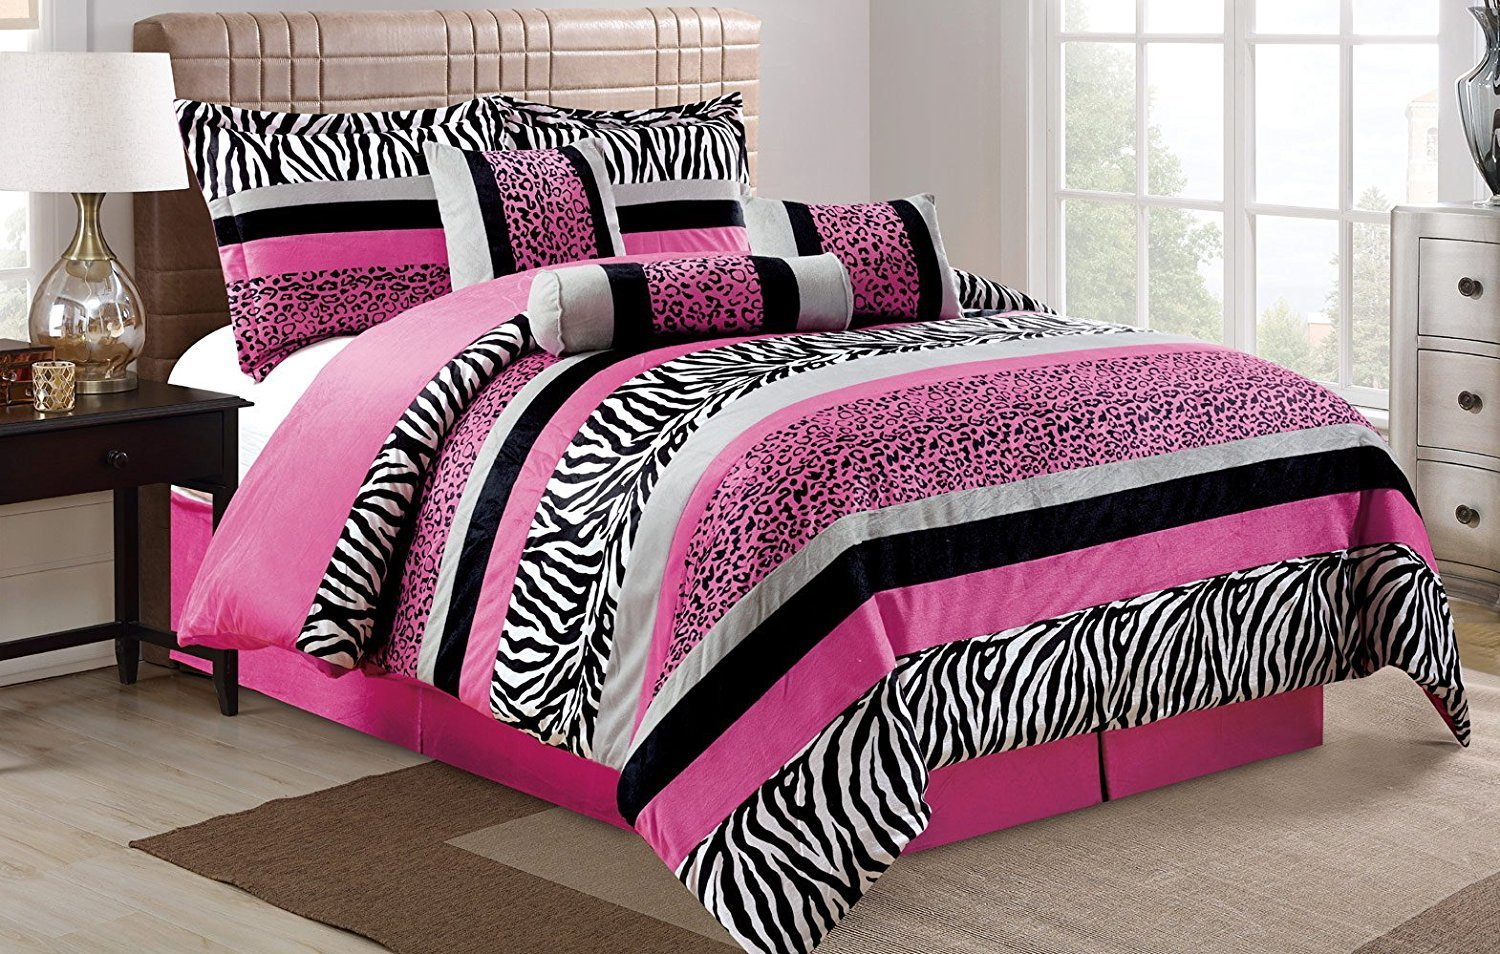 7 Piece Oversize HOT PINK Black White Zebra Leopard Micro Fur Comforter set Full Size Bedding - Teen, Girl, youth, Tween, Children's Room, Master Bedroom, Guest Room